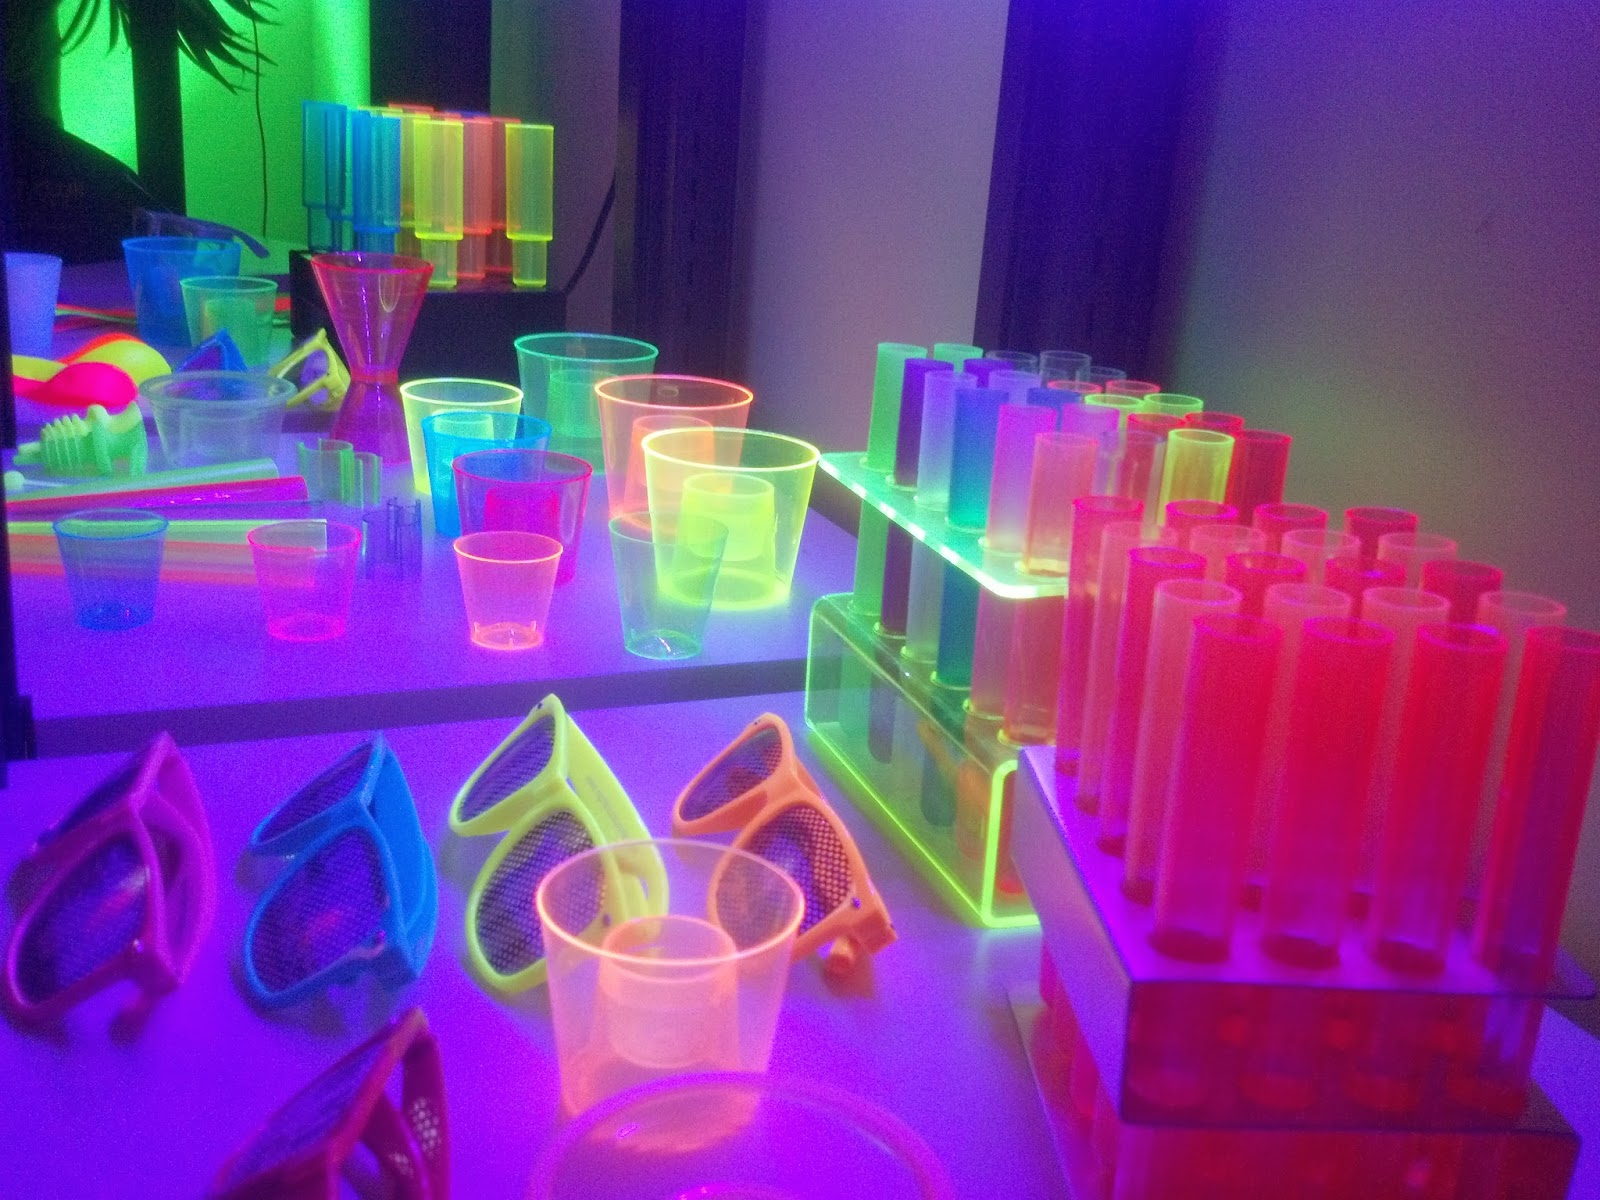 Glow Neon Uv Party Glow In The Dark Party Supplies  sc 1 st  Elitflat & Neon Party Decoration Ideas - Elitflat